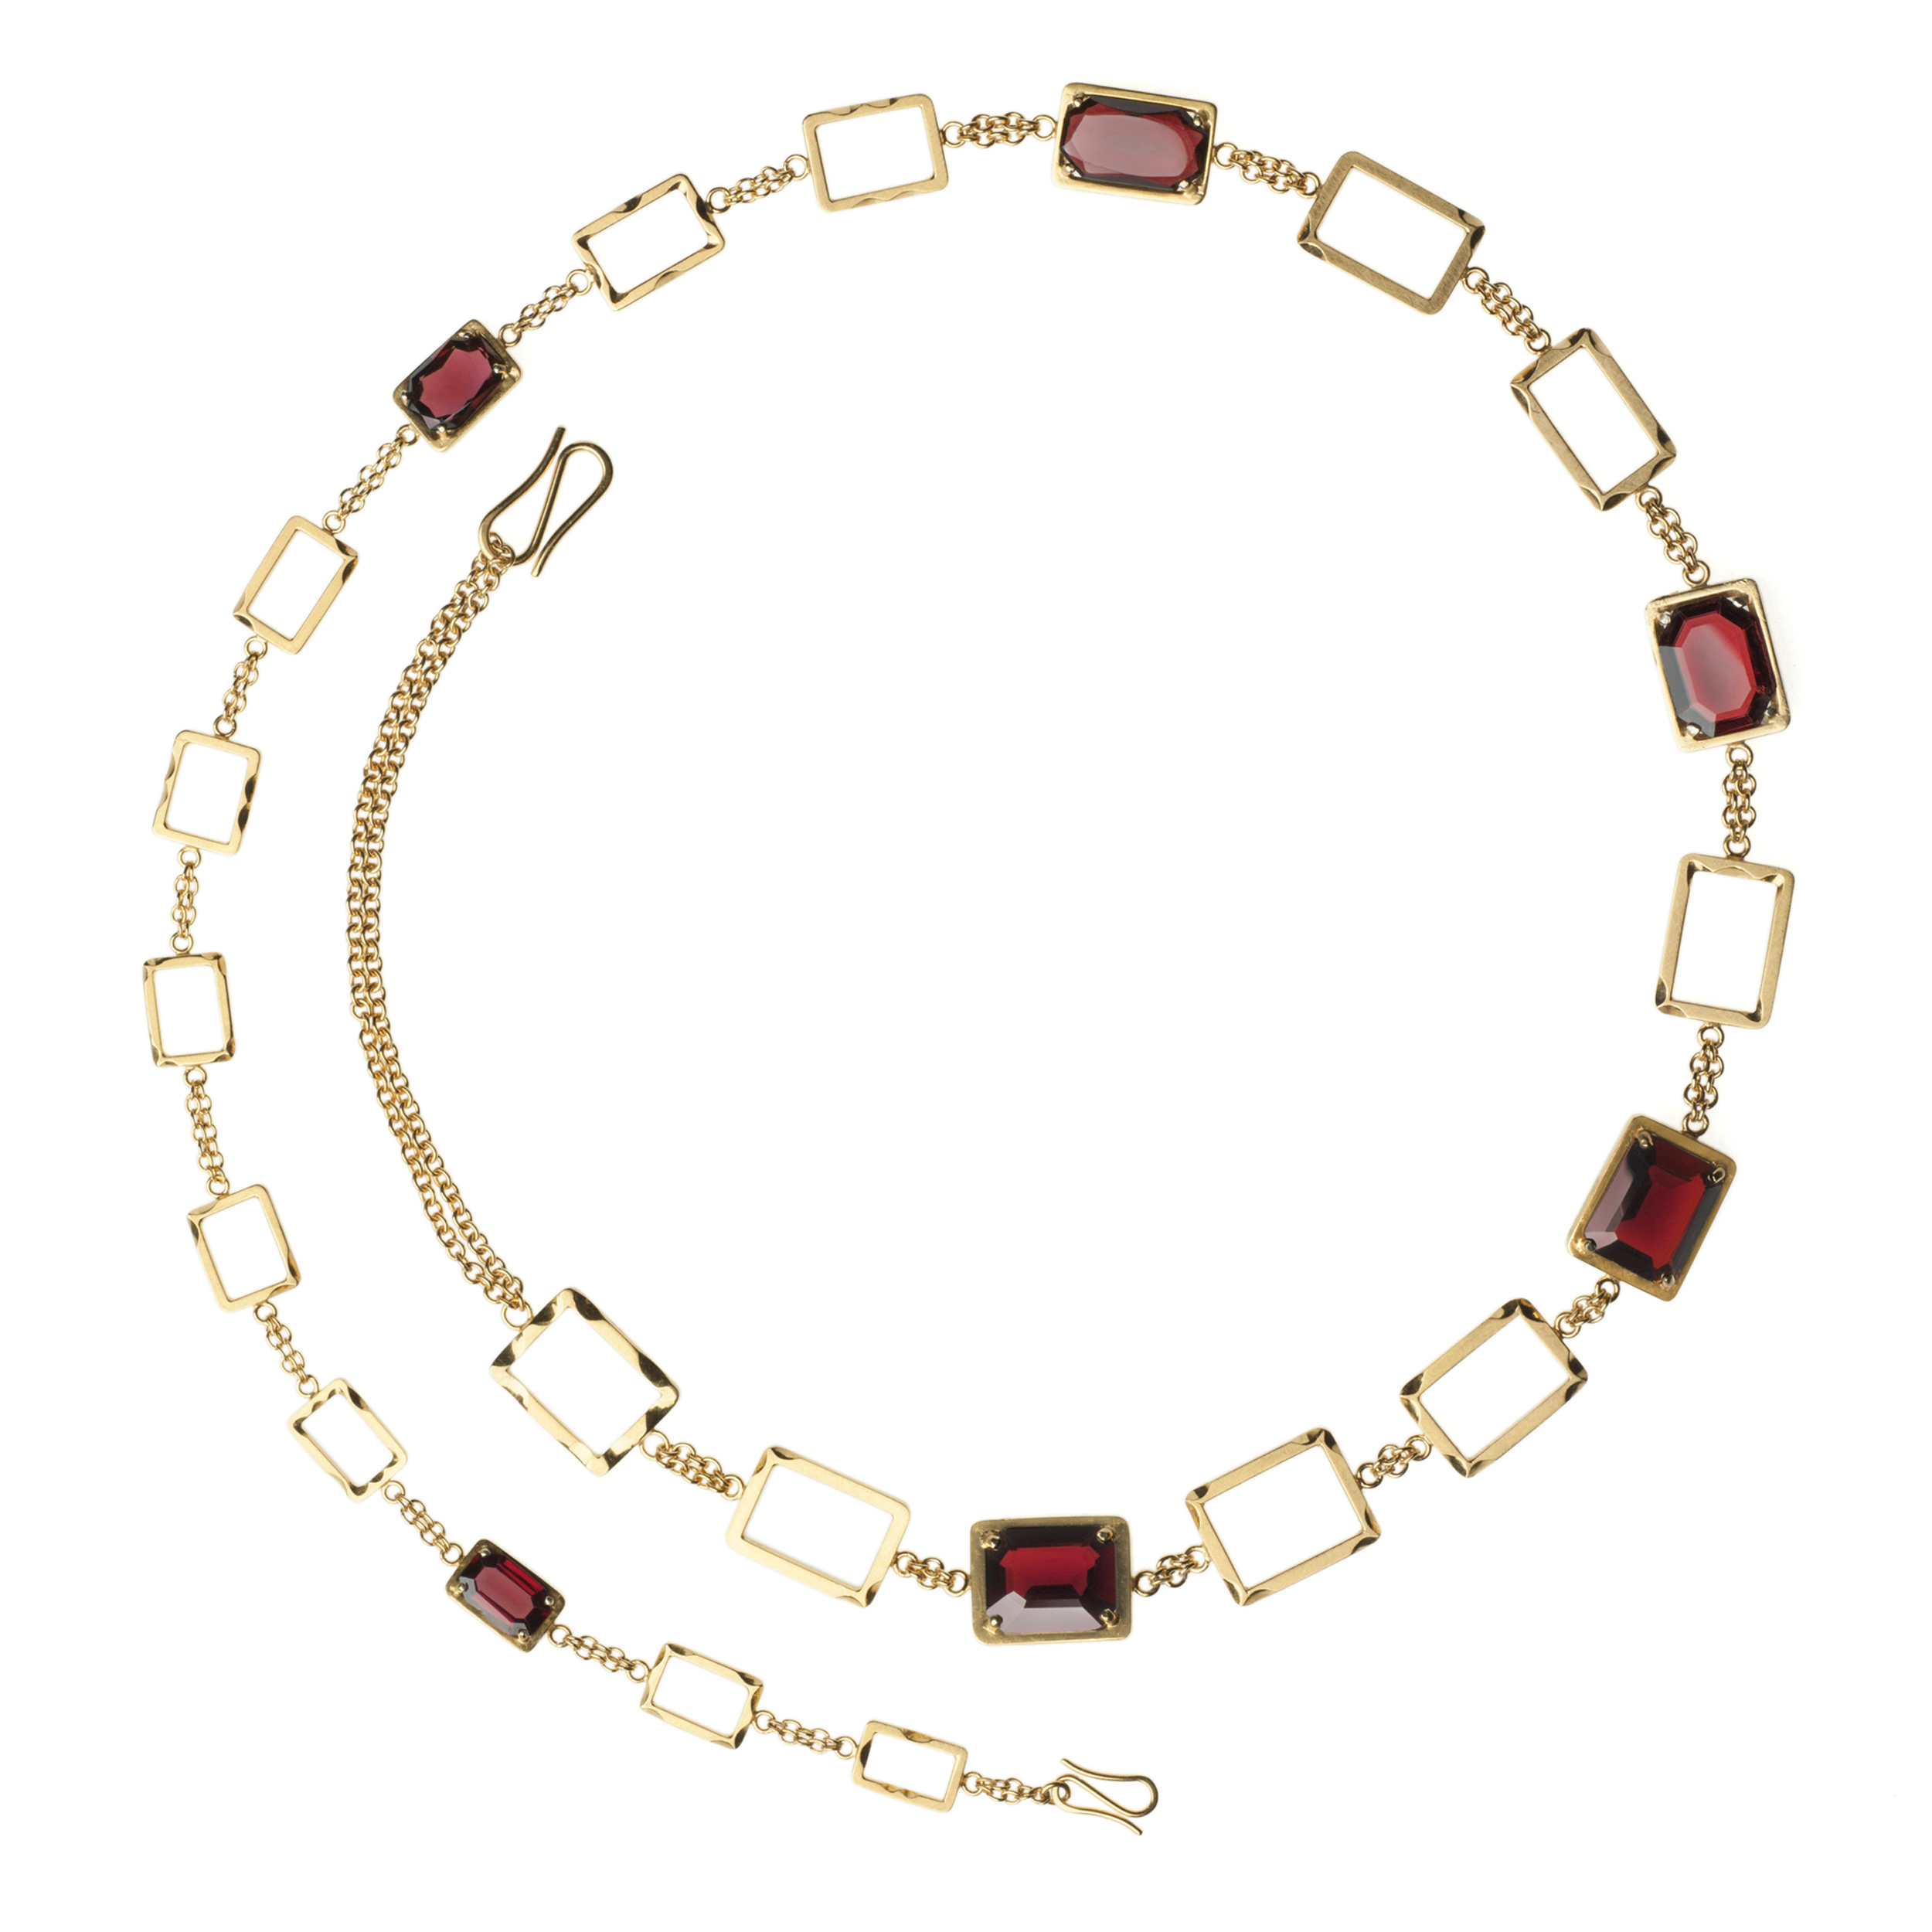 Garnet Chain by Anastasia Young Jewellery for The Lily Holds Firm